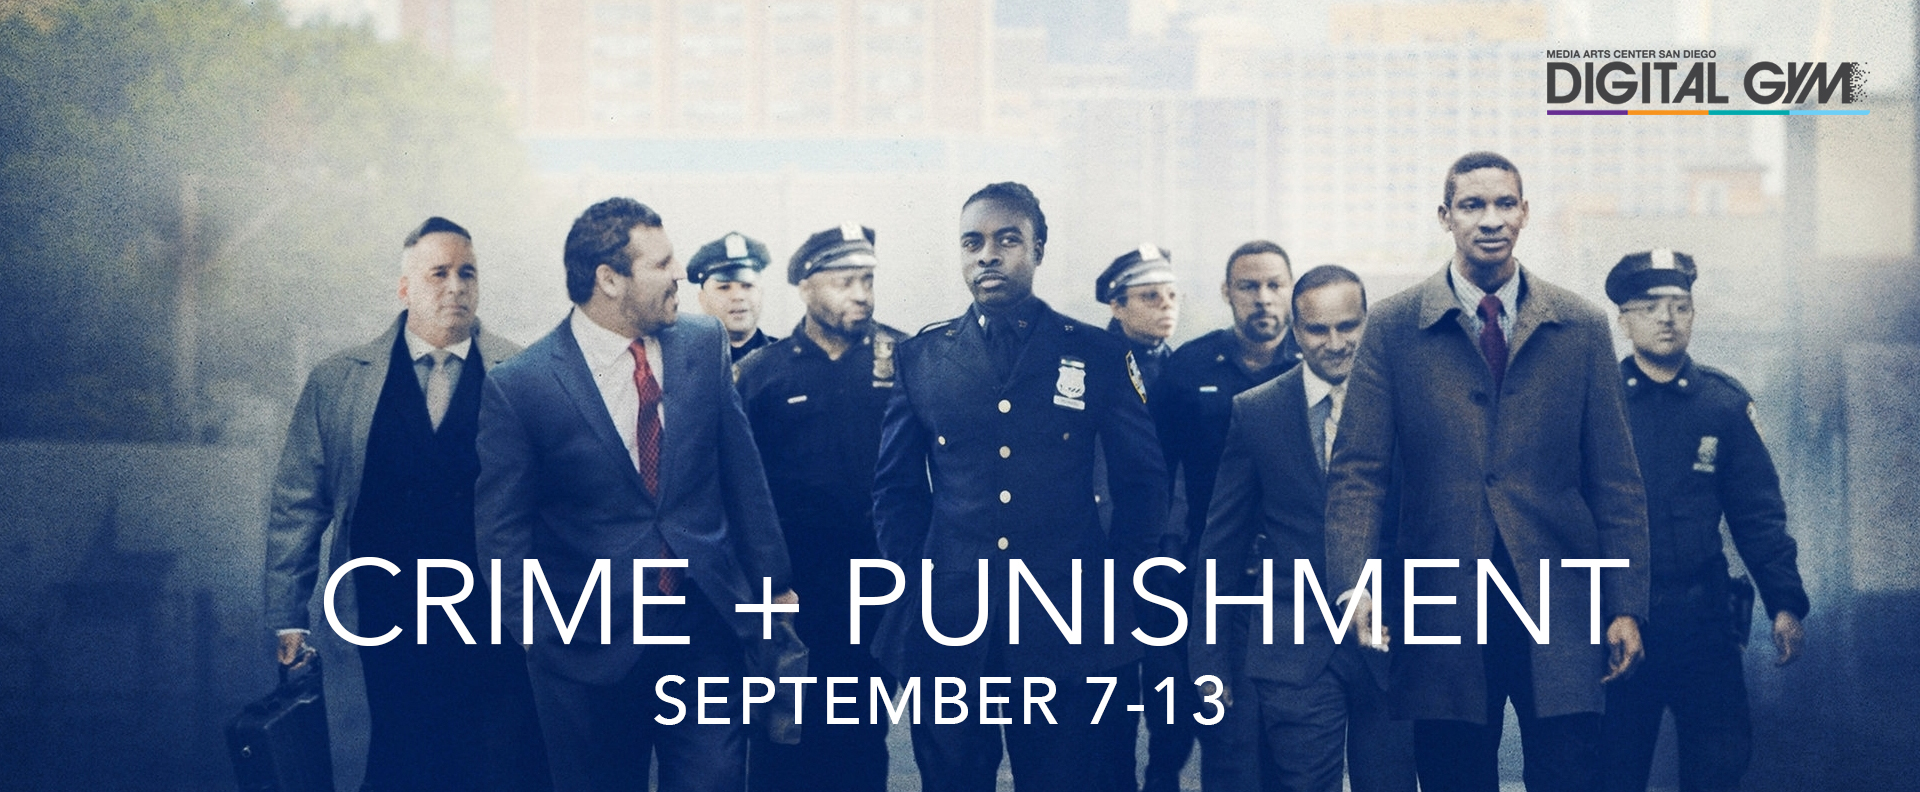 Hulu Presents: Crime + Punishment (September 7-13)